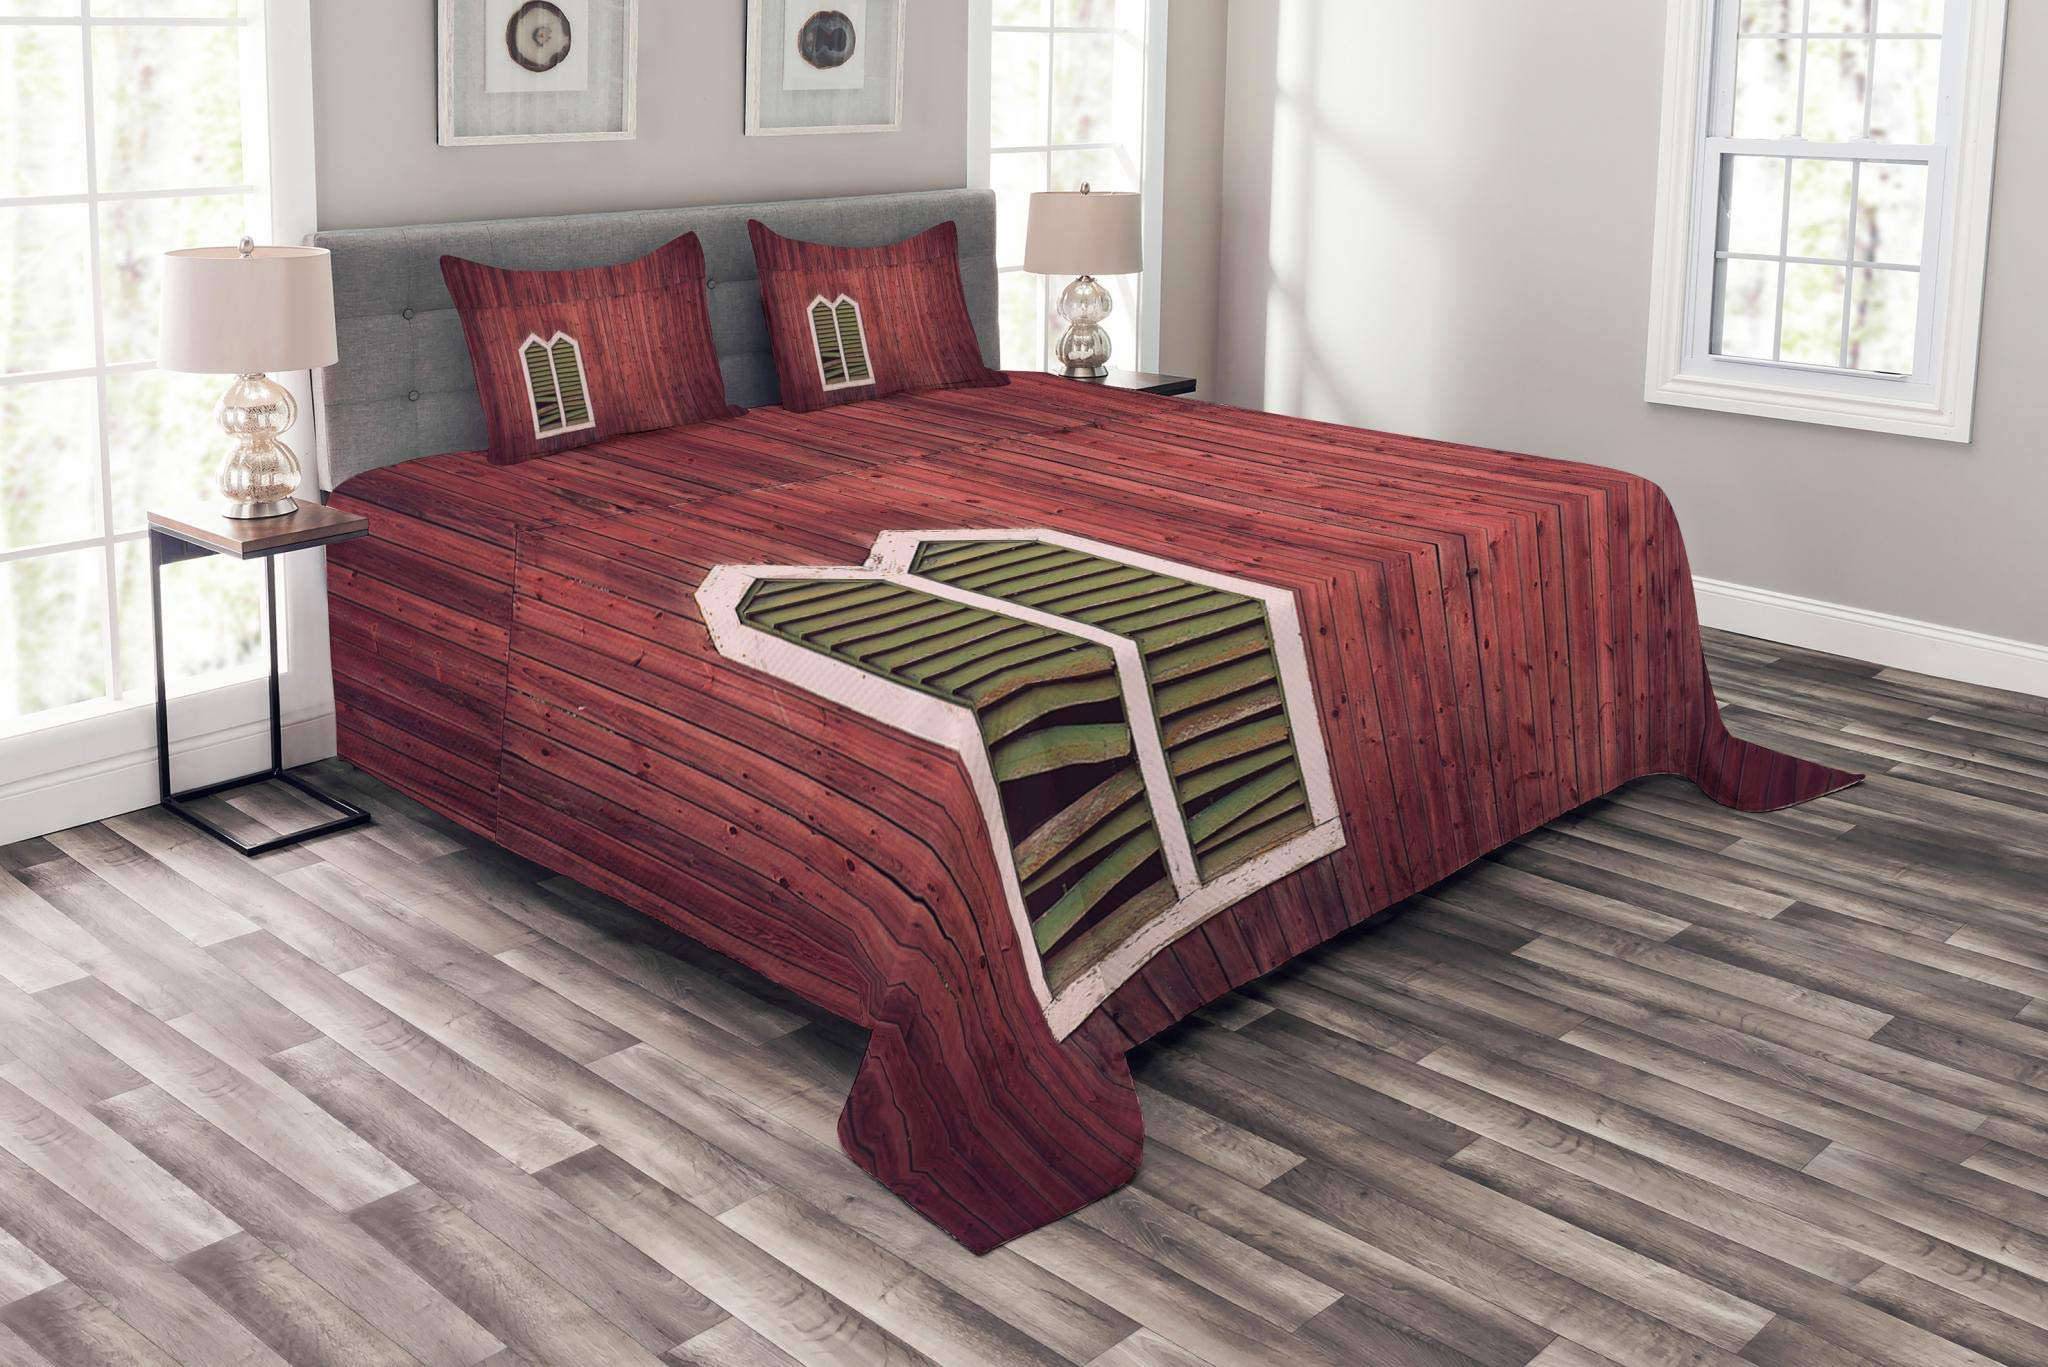 Lunarable Shutters Bedspread Set King Size, Wooden Rustic Wall with Window and Broken Shutters Vertical Panels Traditional House, Decorative Quilted 3 Piece Coverlet Set with 2 Pillow Shams, Burgundy